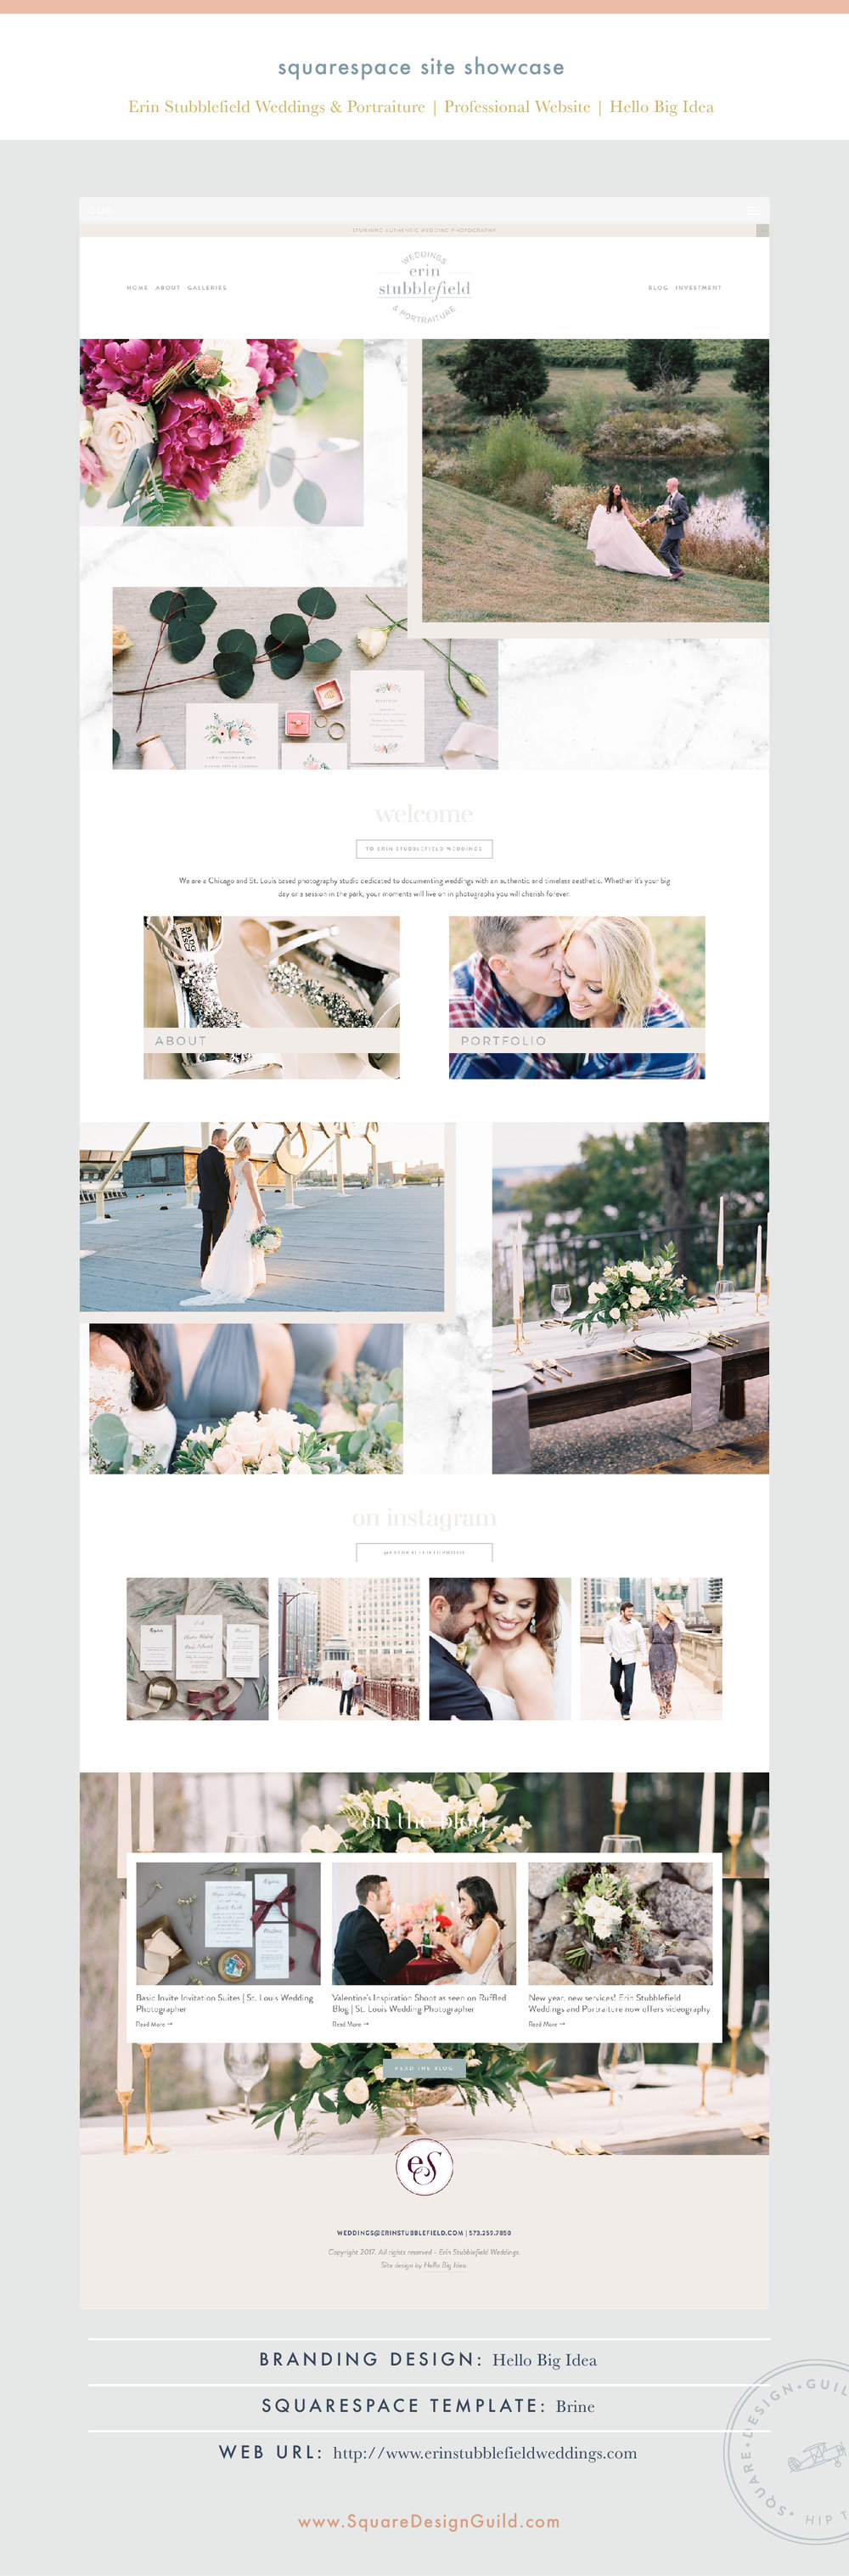 Square Design Guild | Squarespace Site Showcase: Erin Stubblefield Weddings | Professional Website on Brine